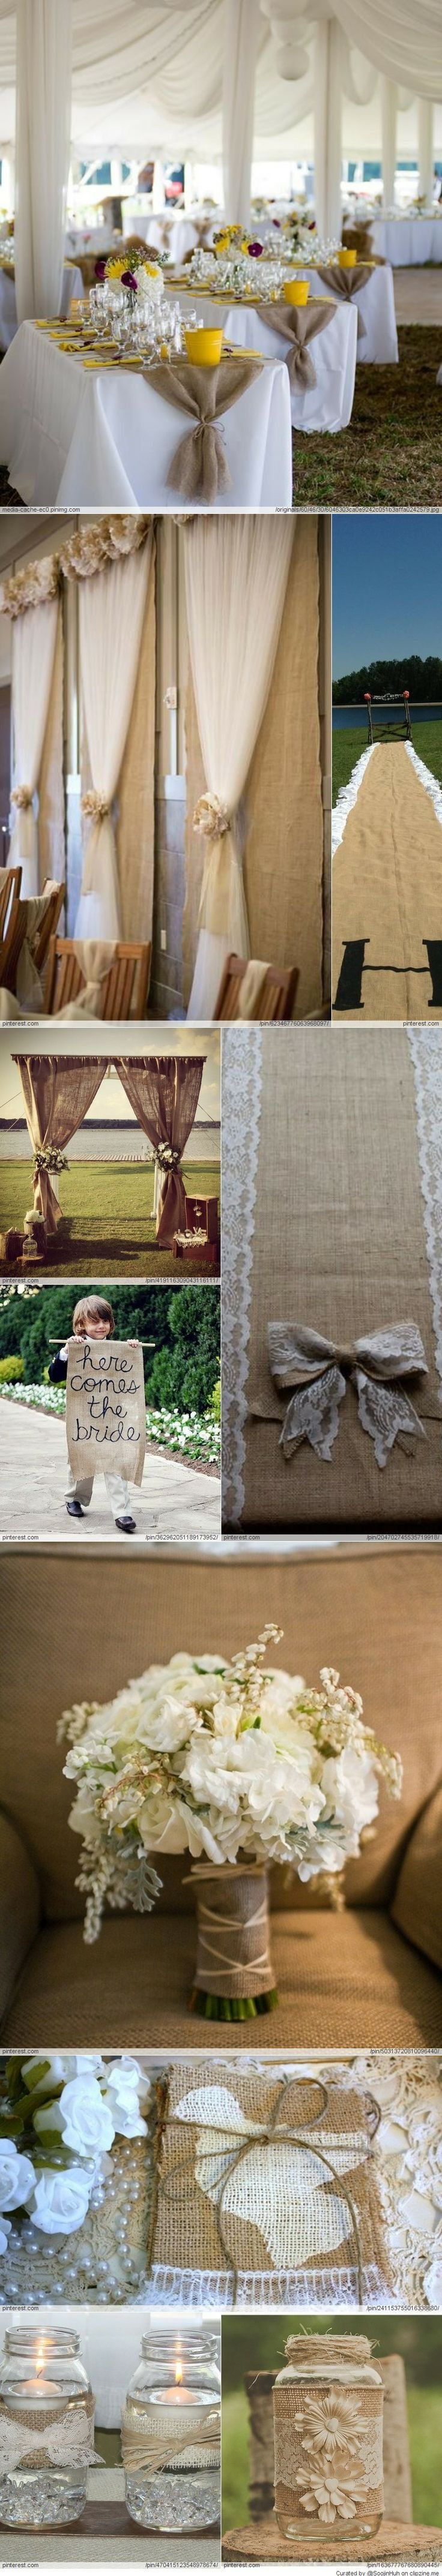 I Like The Burlap Net Flowers Idea For Curtains Home